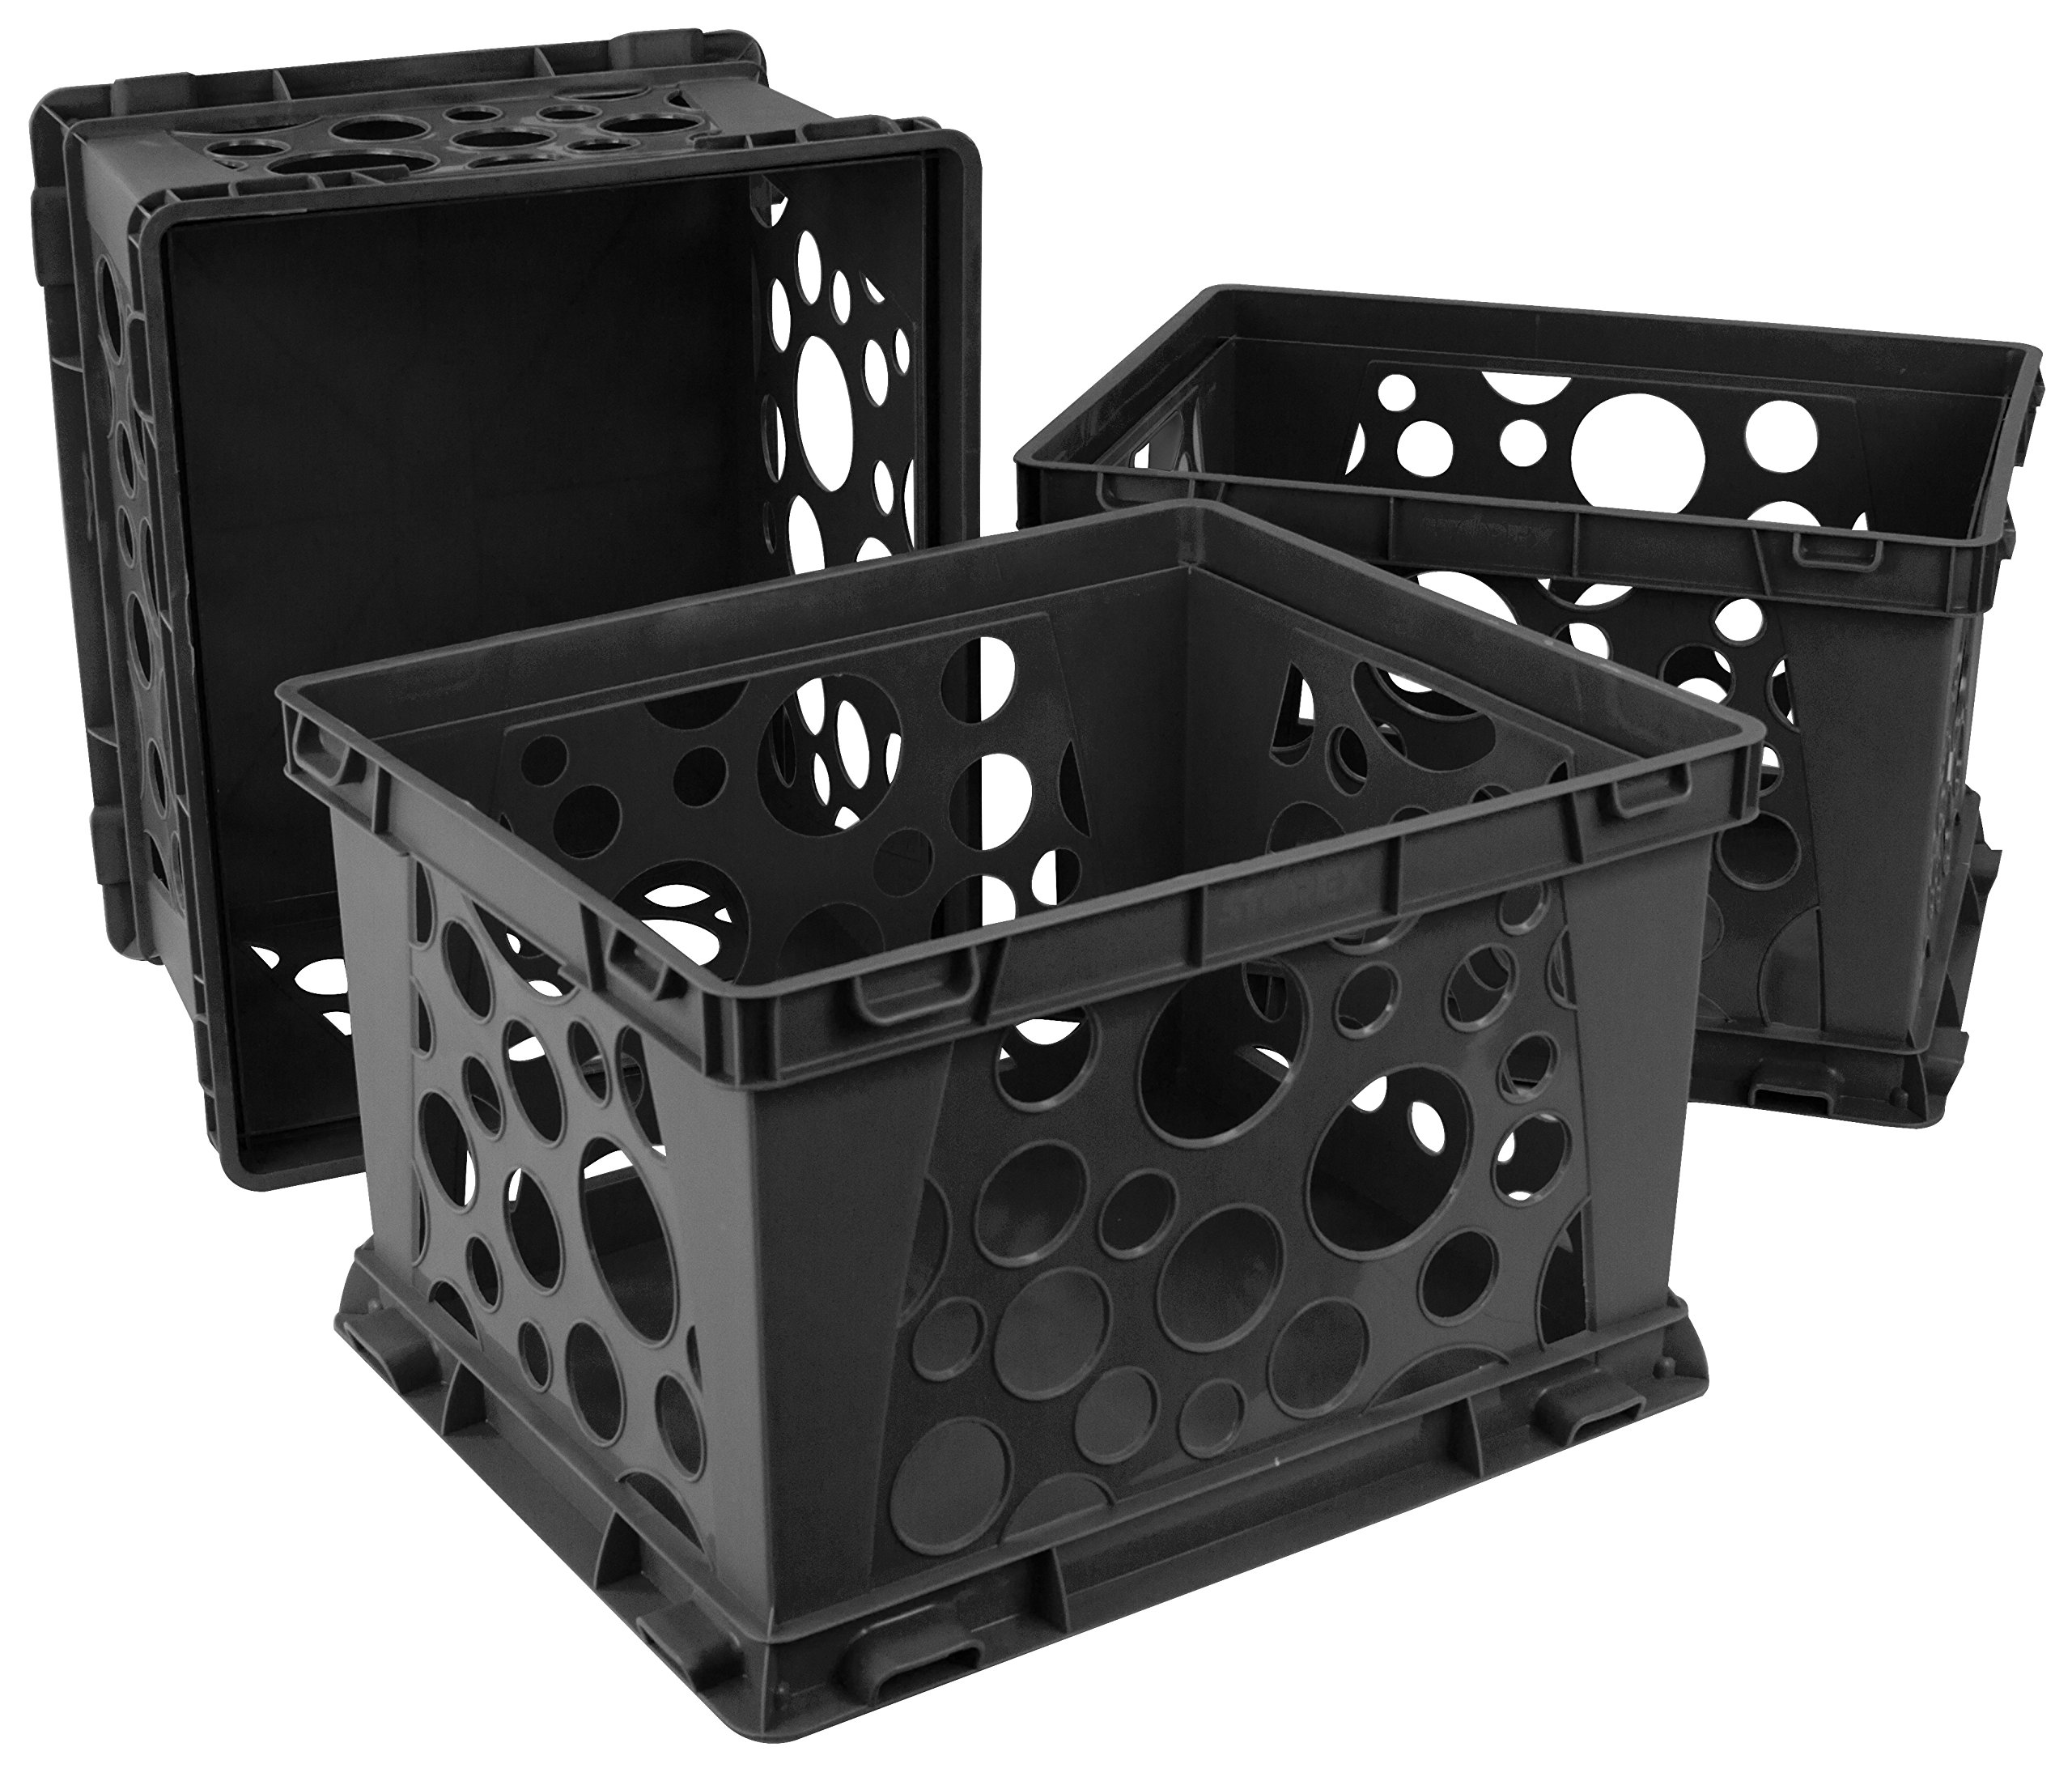 Storex Large Storage and Transport File Crate, 17.25 x 14.25 x 10.5 Inches, Black, Case of 3 (STX61546U03C)